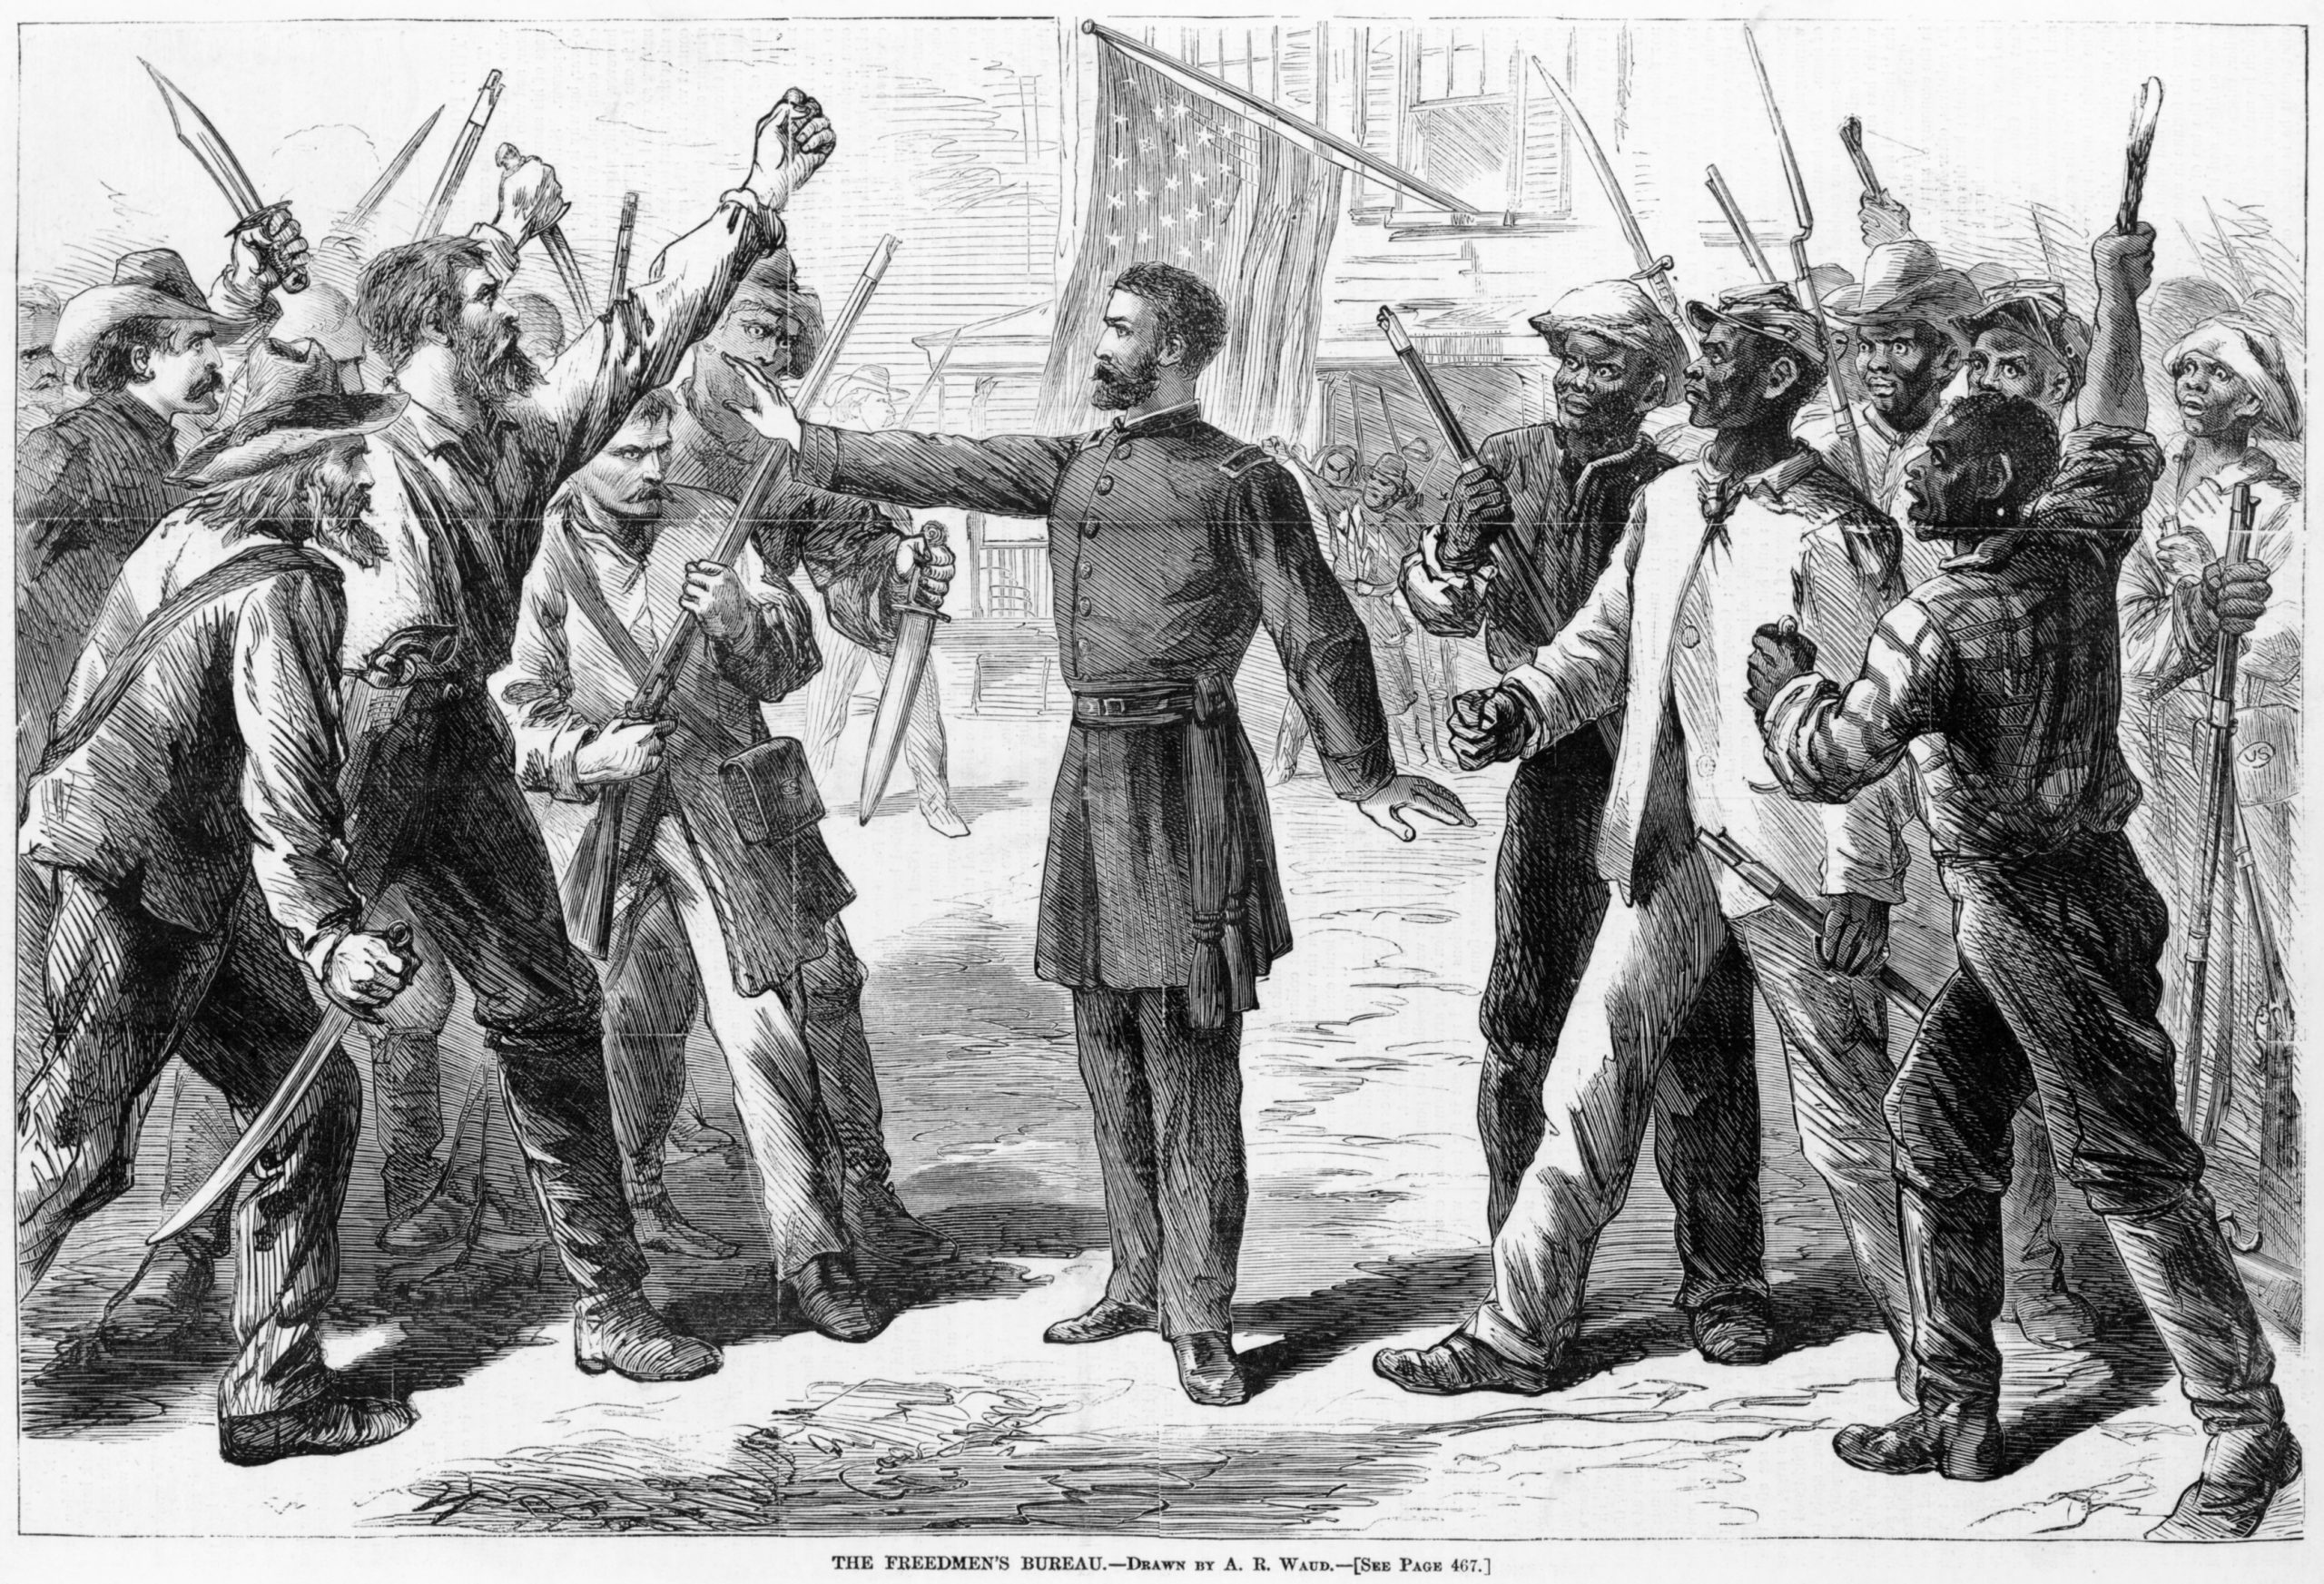 A Bureau agent stands between armed groups of Southern whites and Freedmen in this 1868 picture from Harper's Weekly.